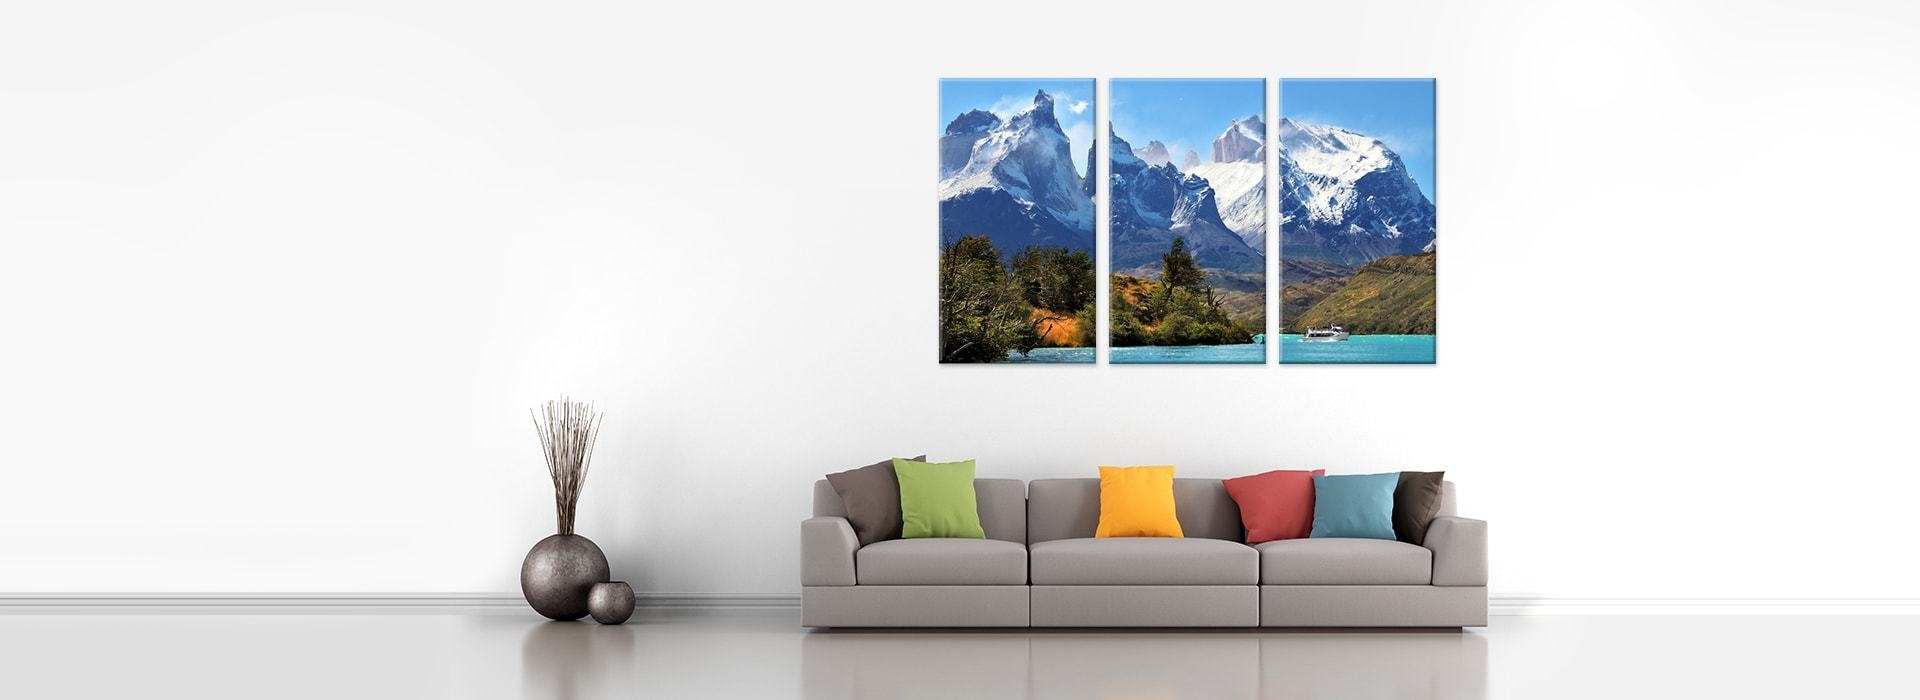 Canvas Prints | Canvas Factory Regarding Most Current Cape Town Canvas Wall Art (View 7 of 15)